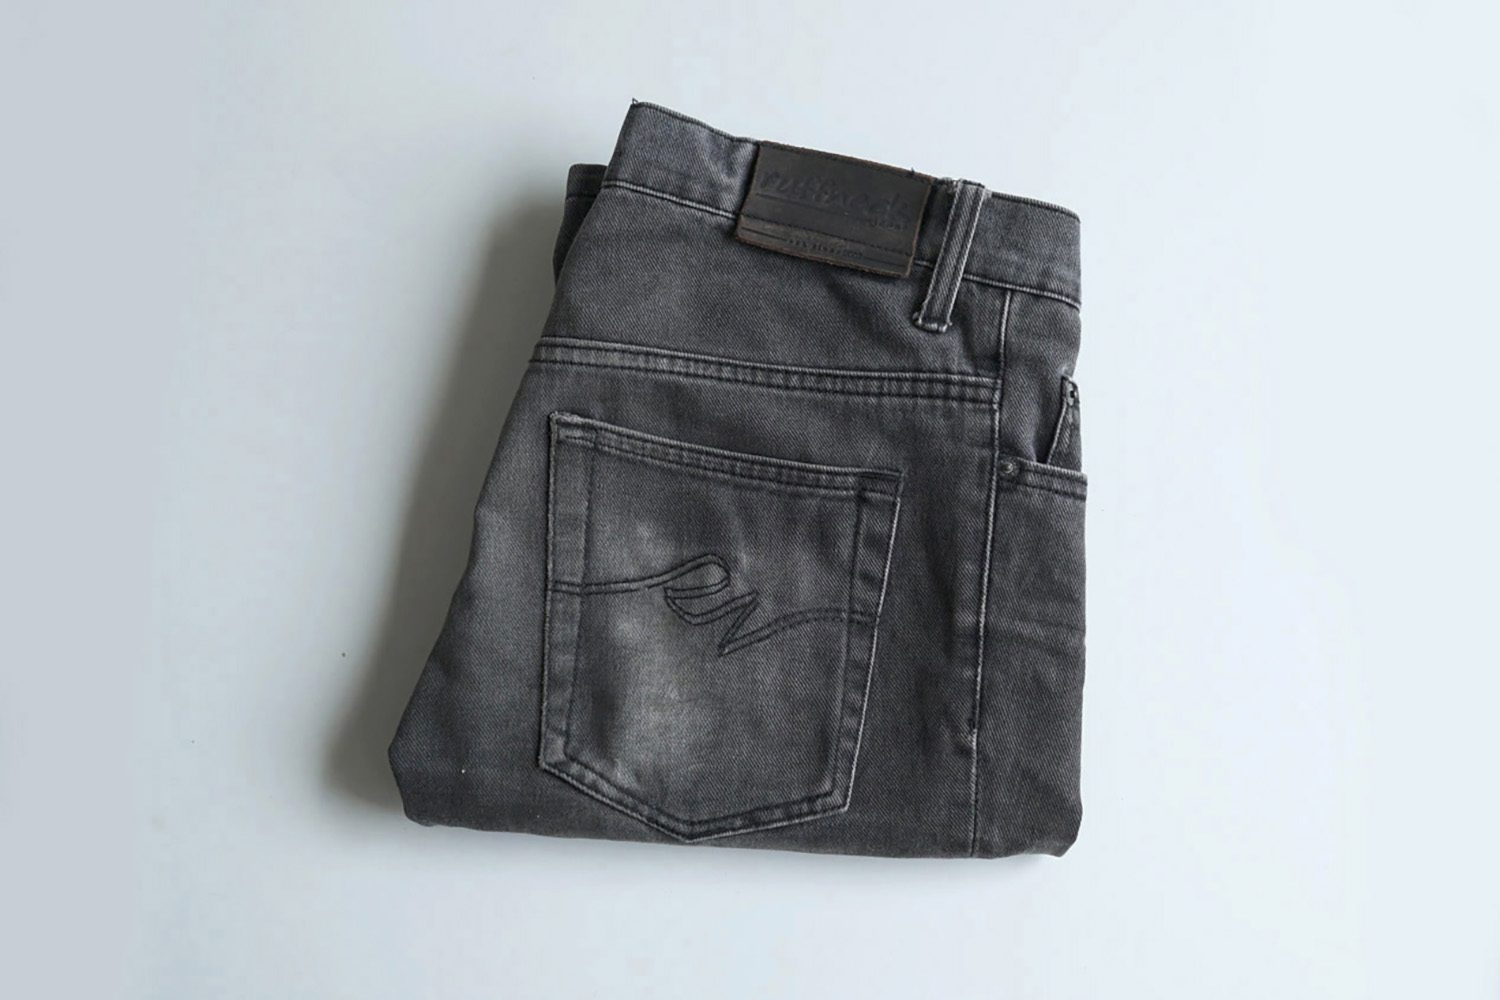 Neighbourlist_Indonesian_Jeans_pioneer_Ruffneck1